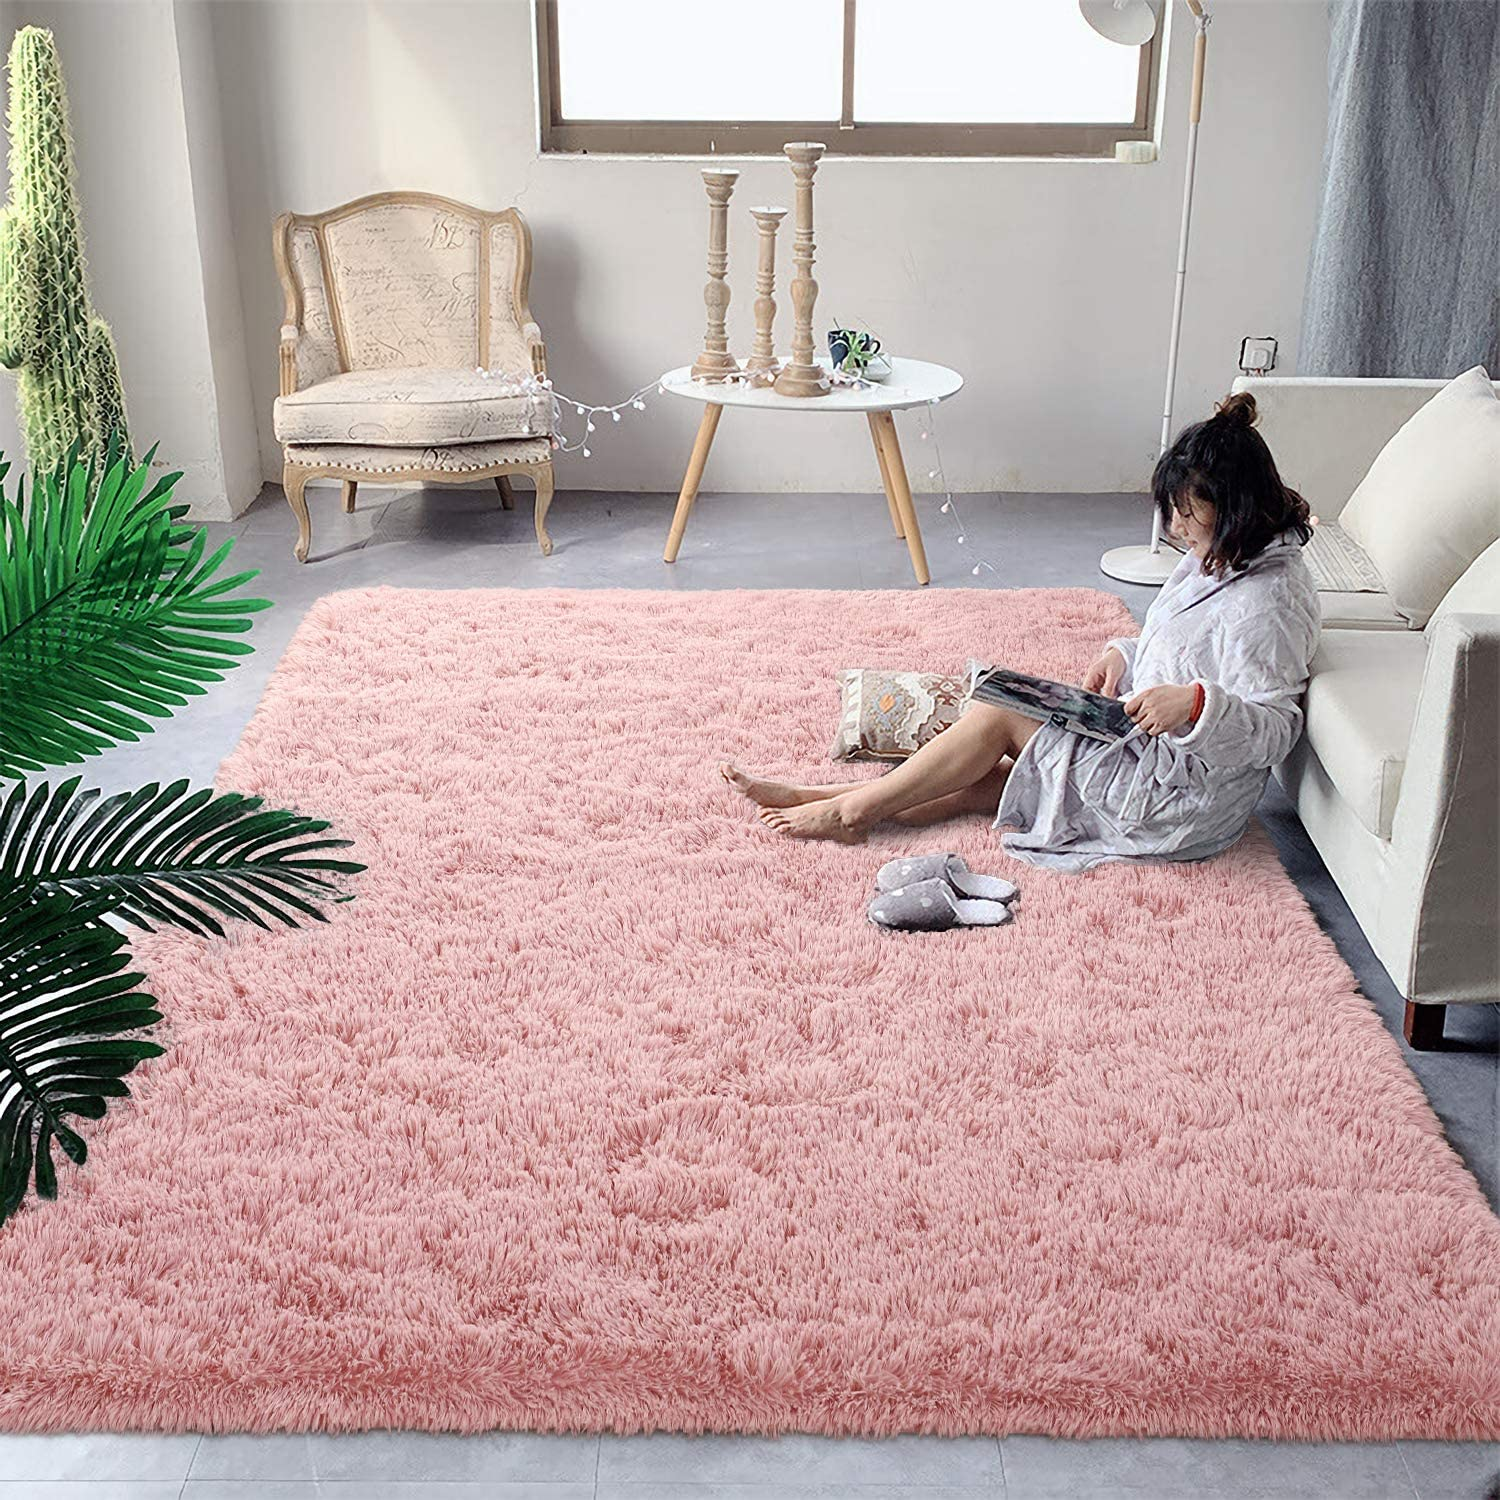 DweIke Soft Fluffy Shag Area Manufacturer direct delivery Rugs Ranking TOP16 Shaggy for Living Room Floor